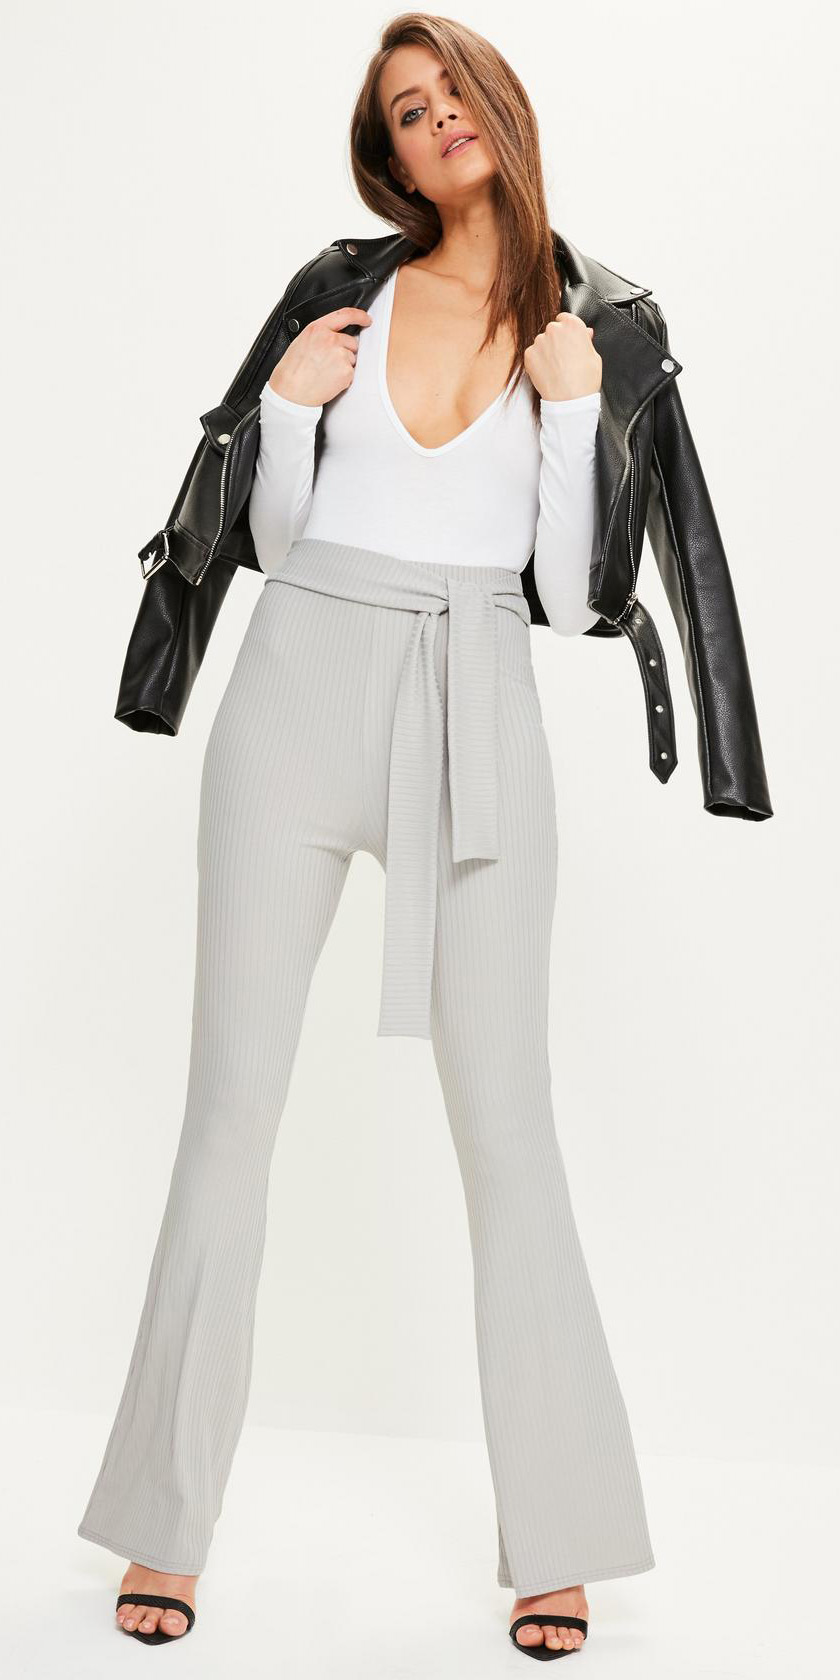 grayl-wideleg-pants-white-top-black-jacket-moto-black-shoe-sandalh-fall-winter-hairr-dinner.jpg